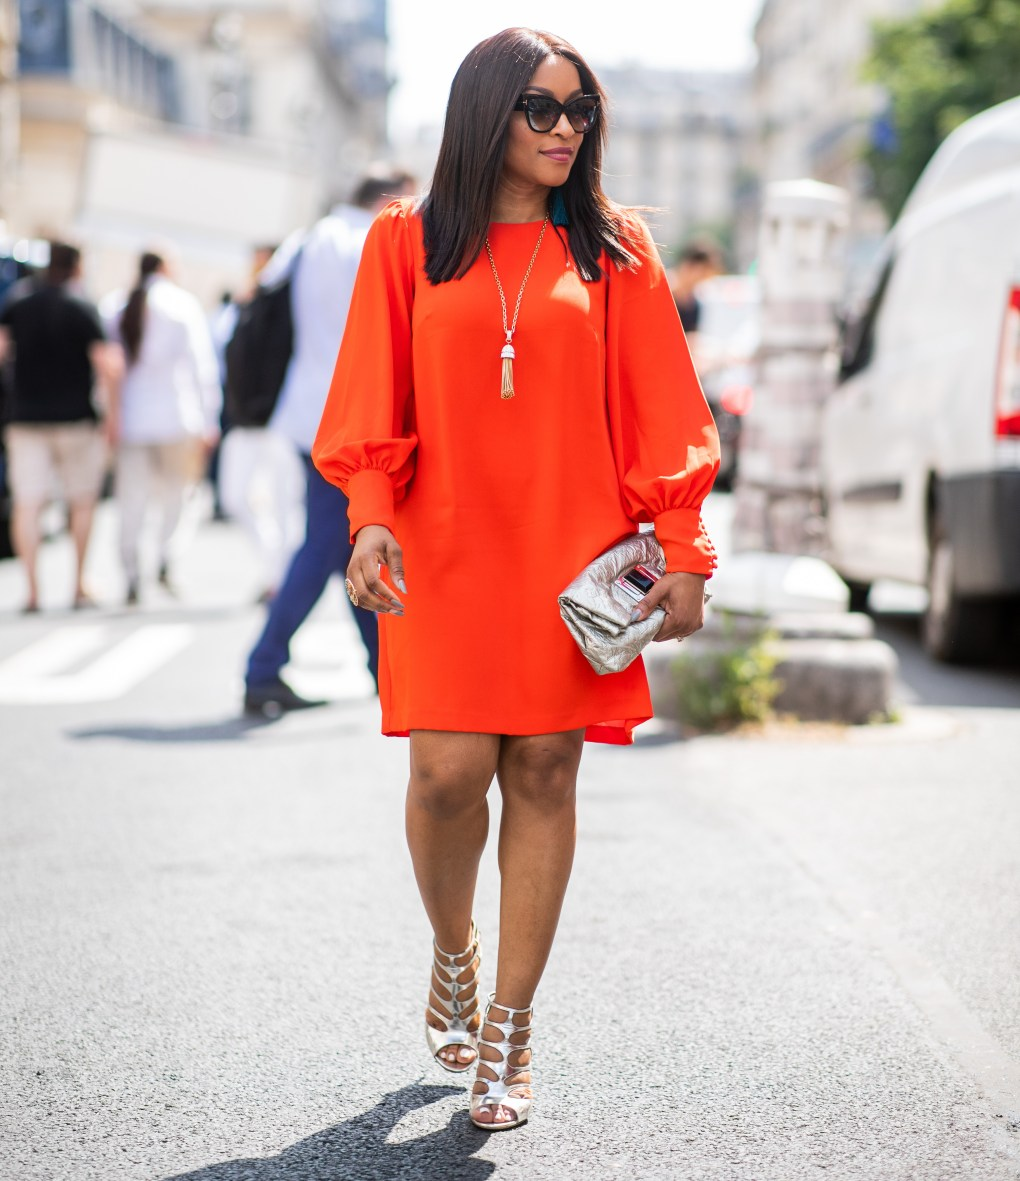 The 5 Best Dresses for Ladies with Short Torsos